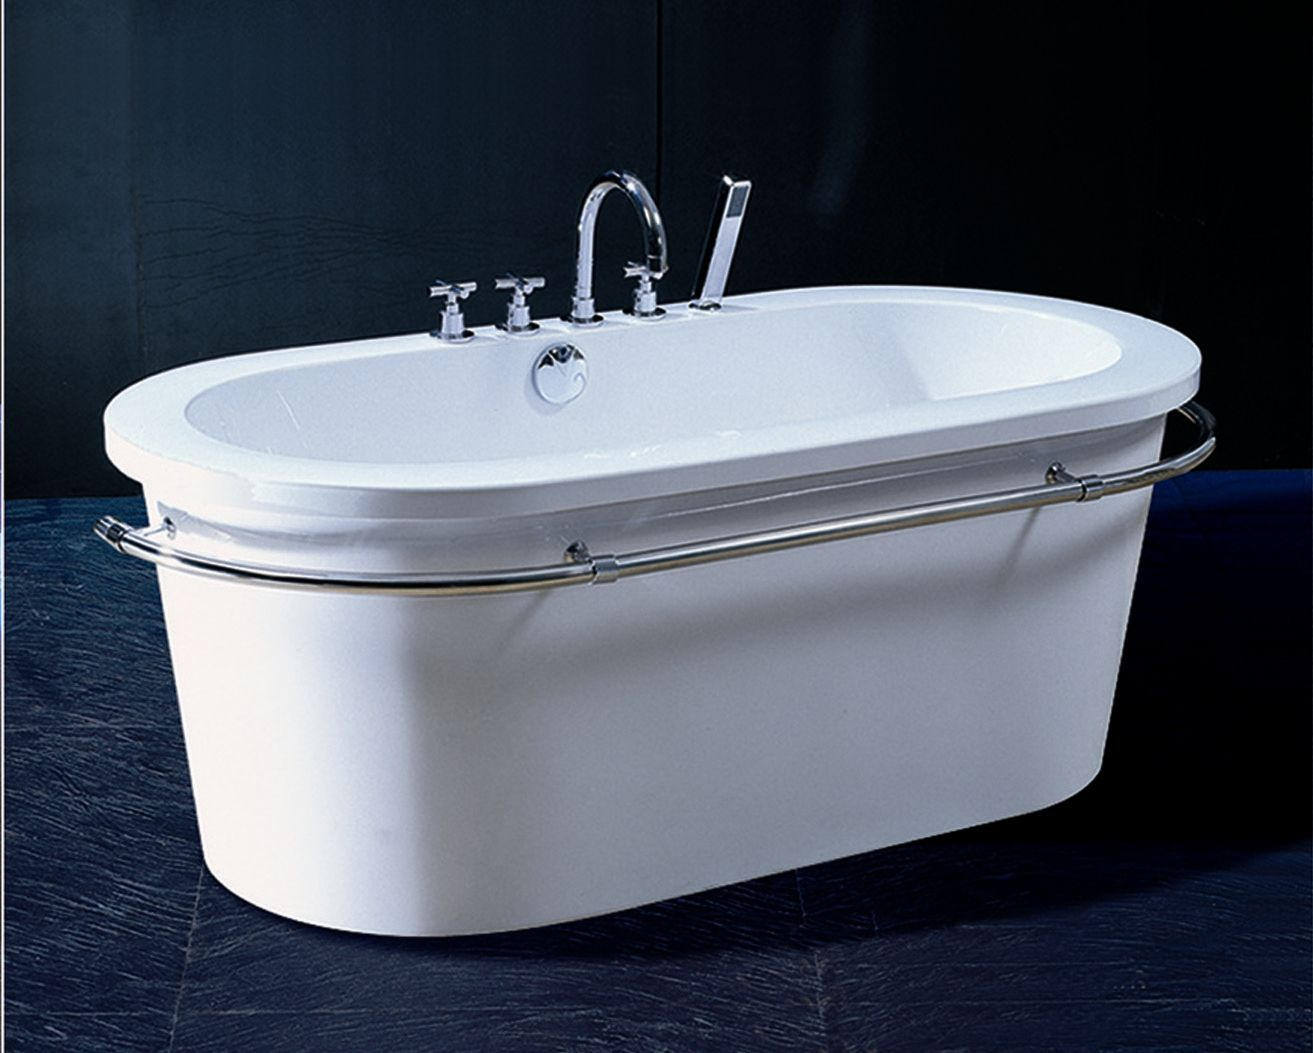 Aquatica Group Oval Acrylic Bathtub - PURESCAPE 303 SKU #: XAI1021 ...